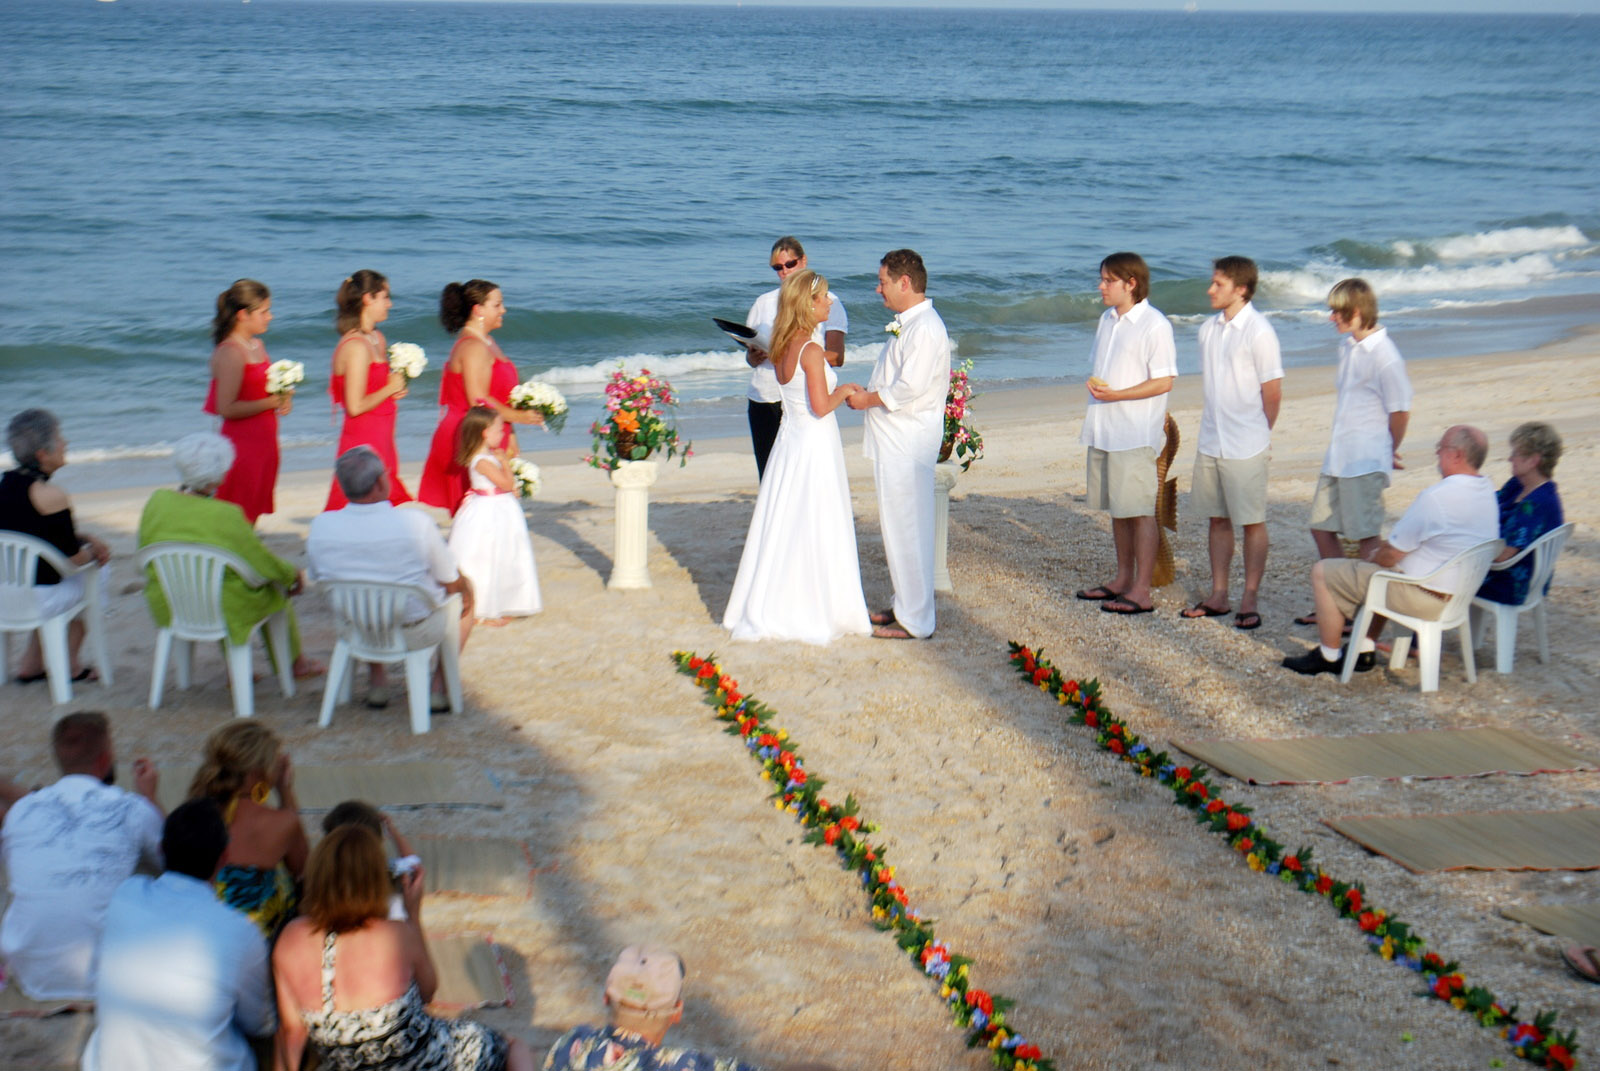 A wedding ceremony on a beach